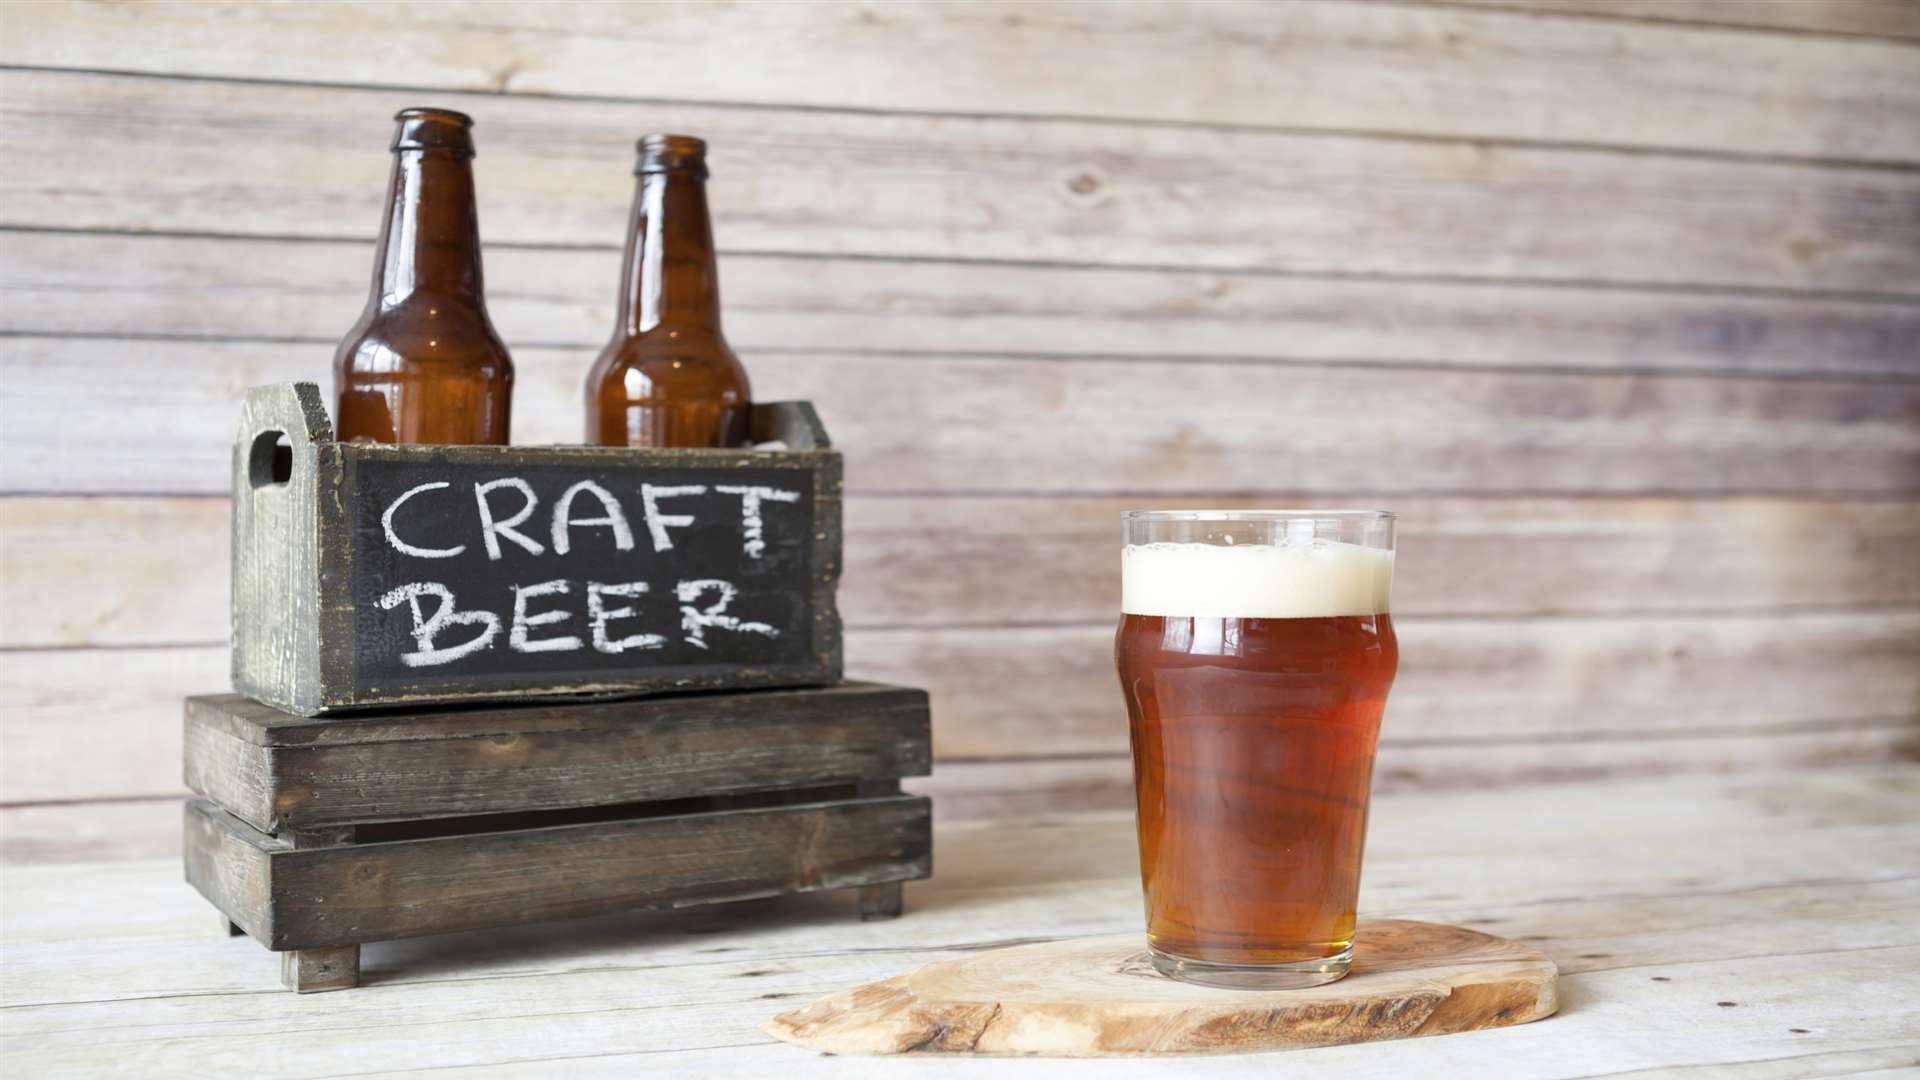 Craft beer makers in Kent are signing up to an initiative to make it clear their products come from independent breweries